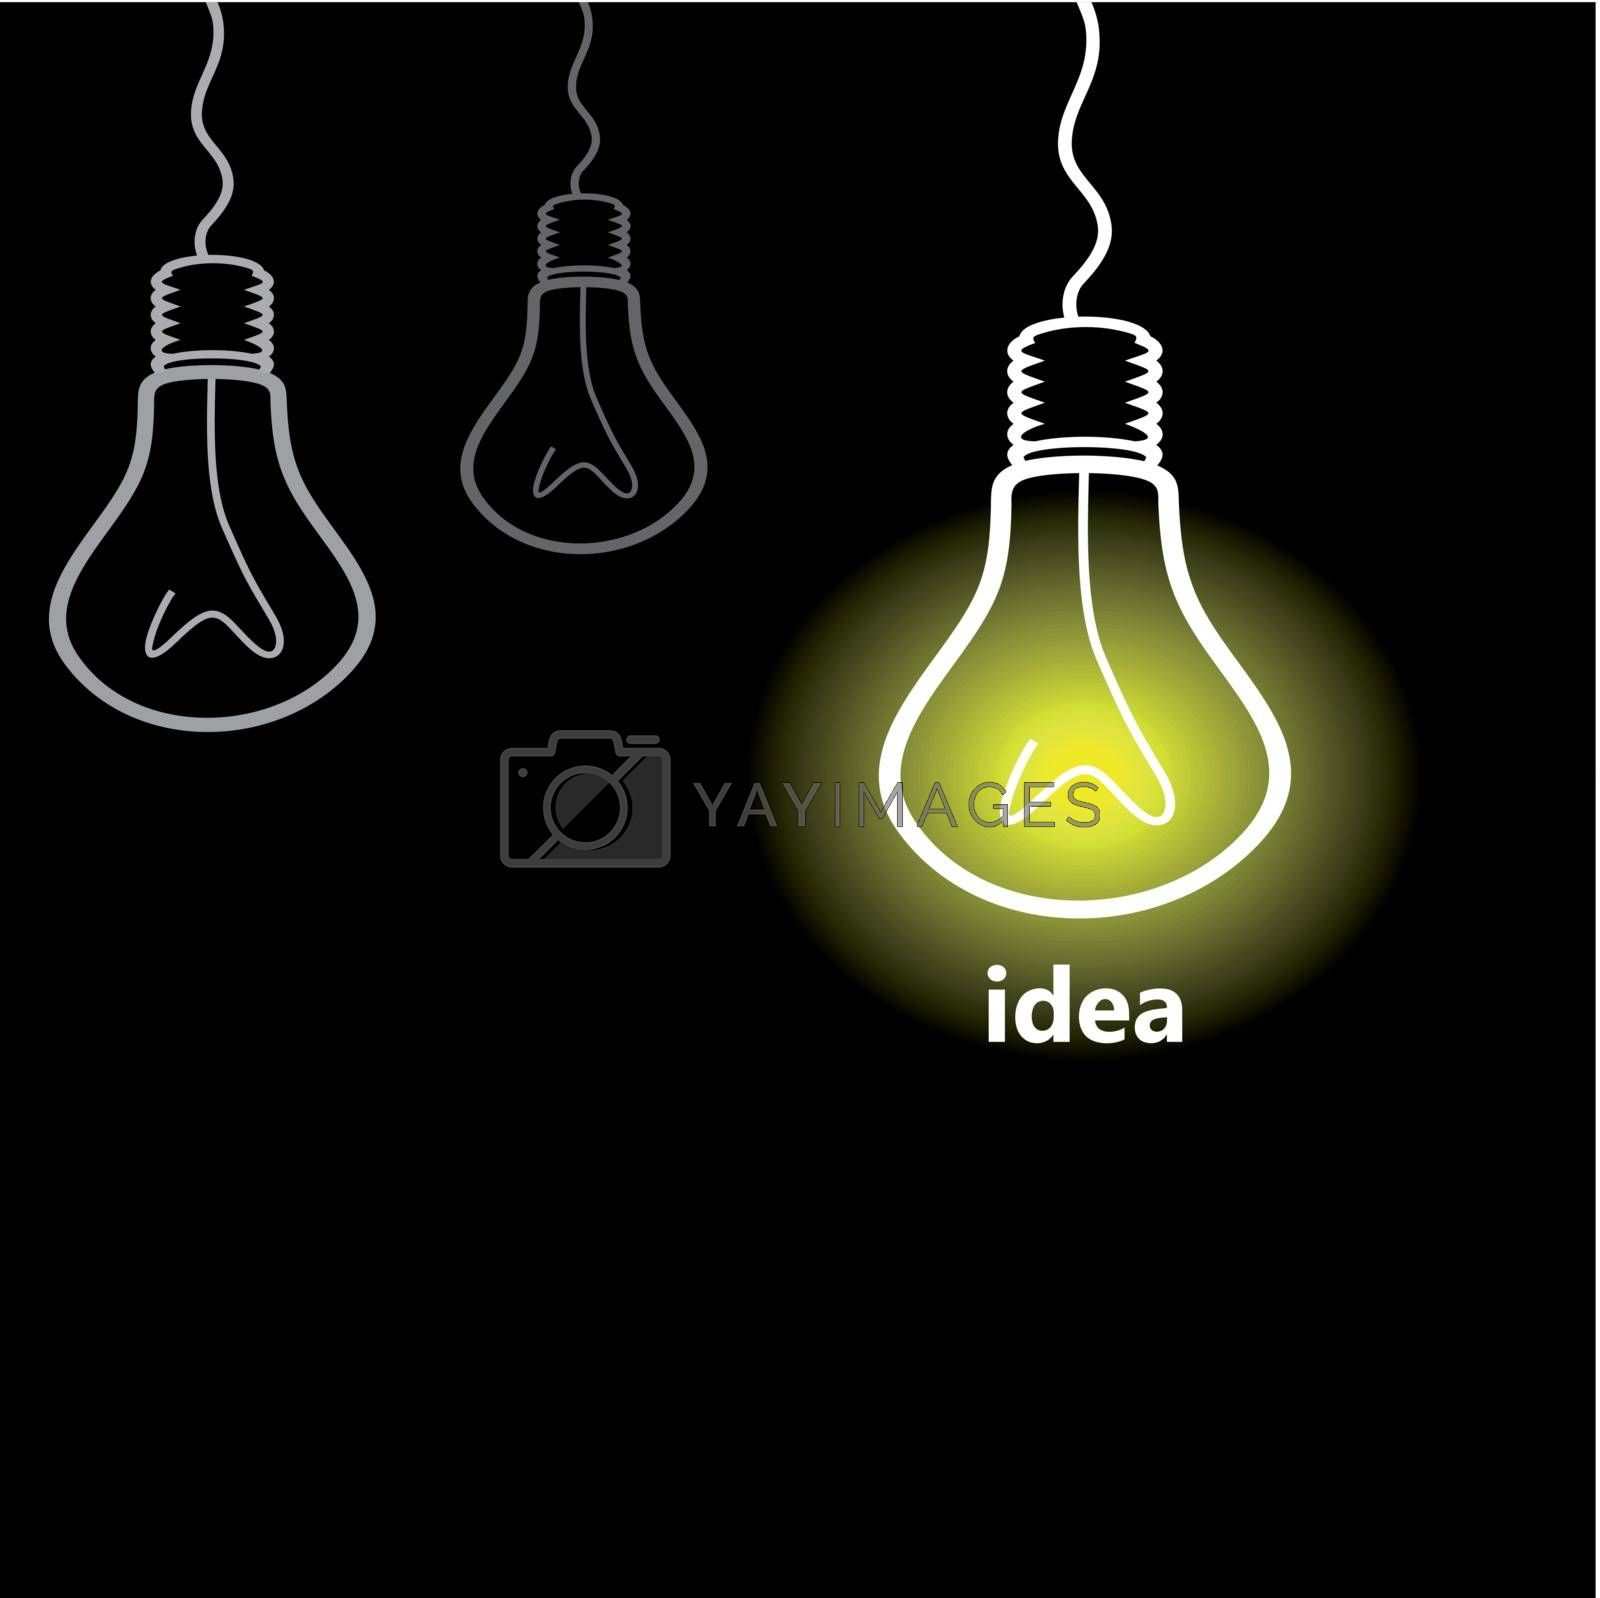 The collection of bulbs means idea